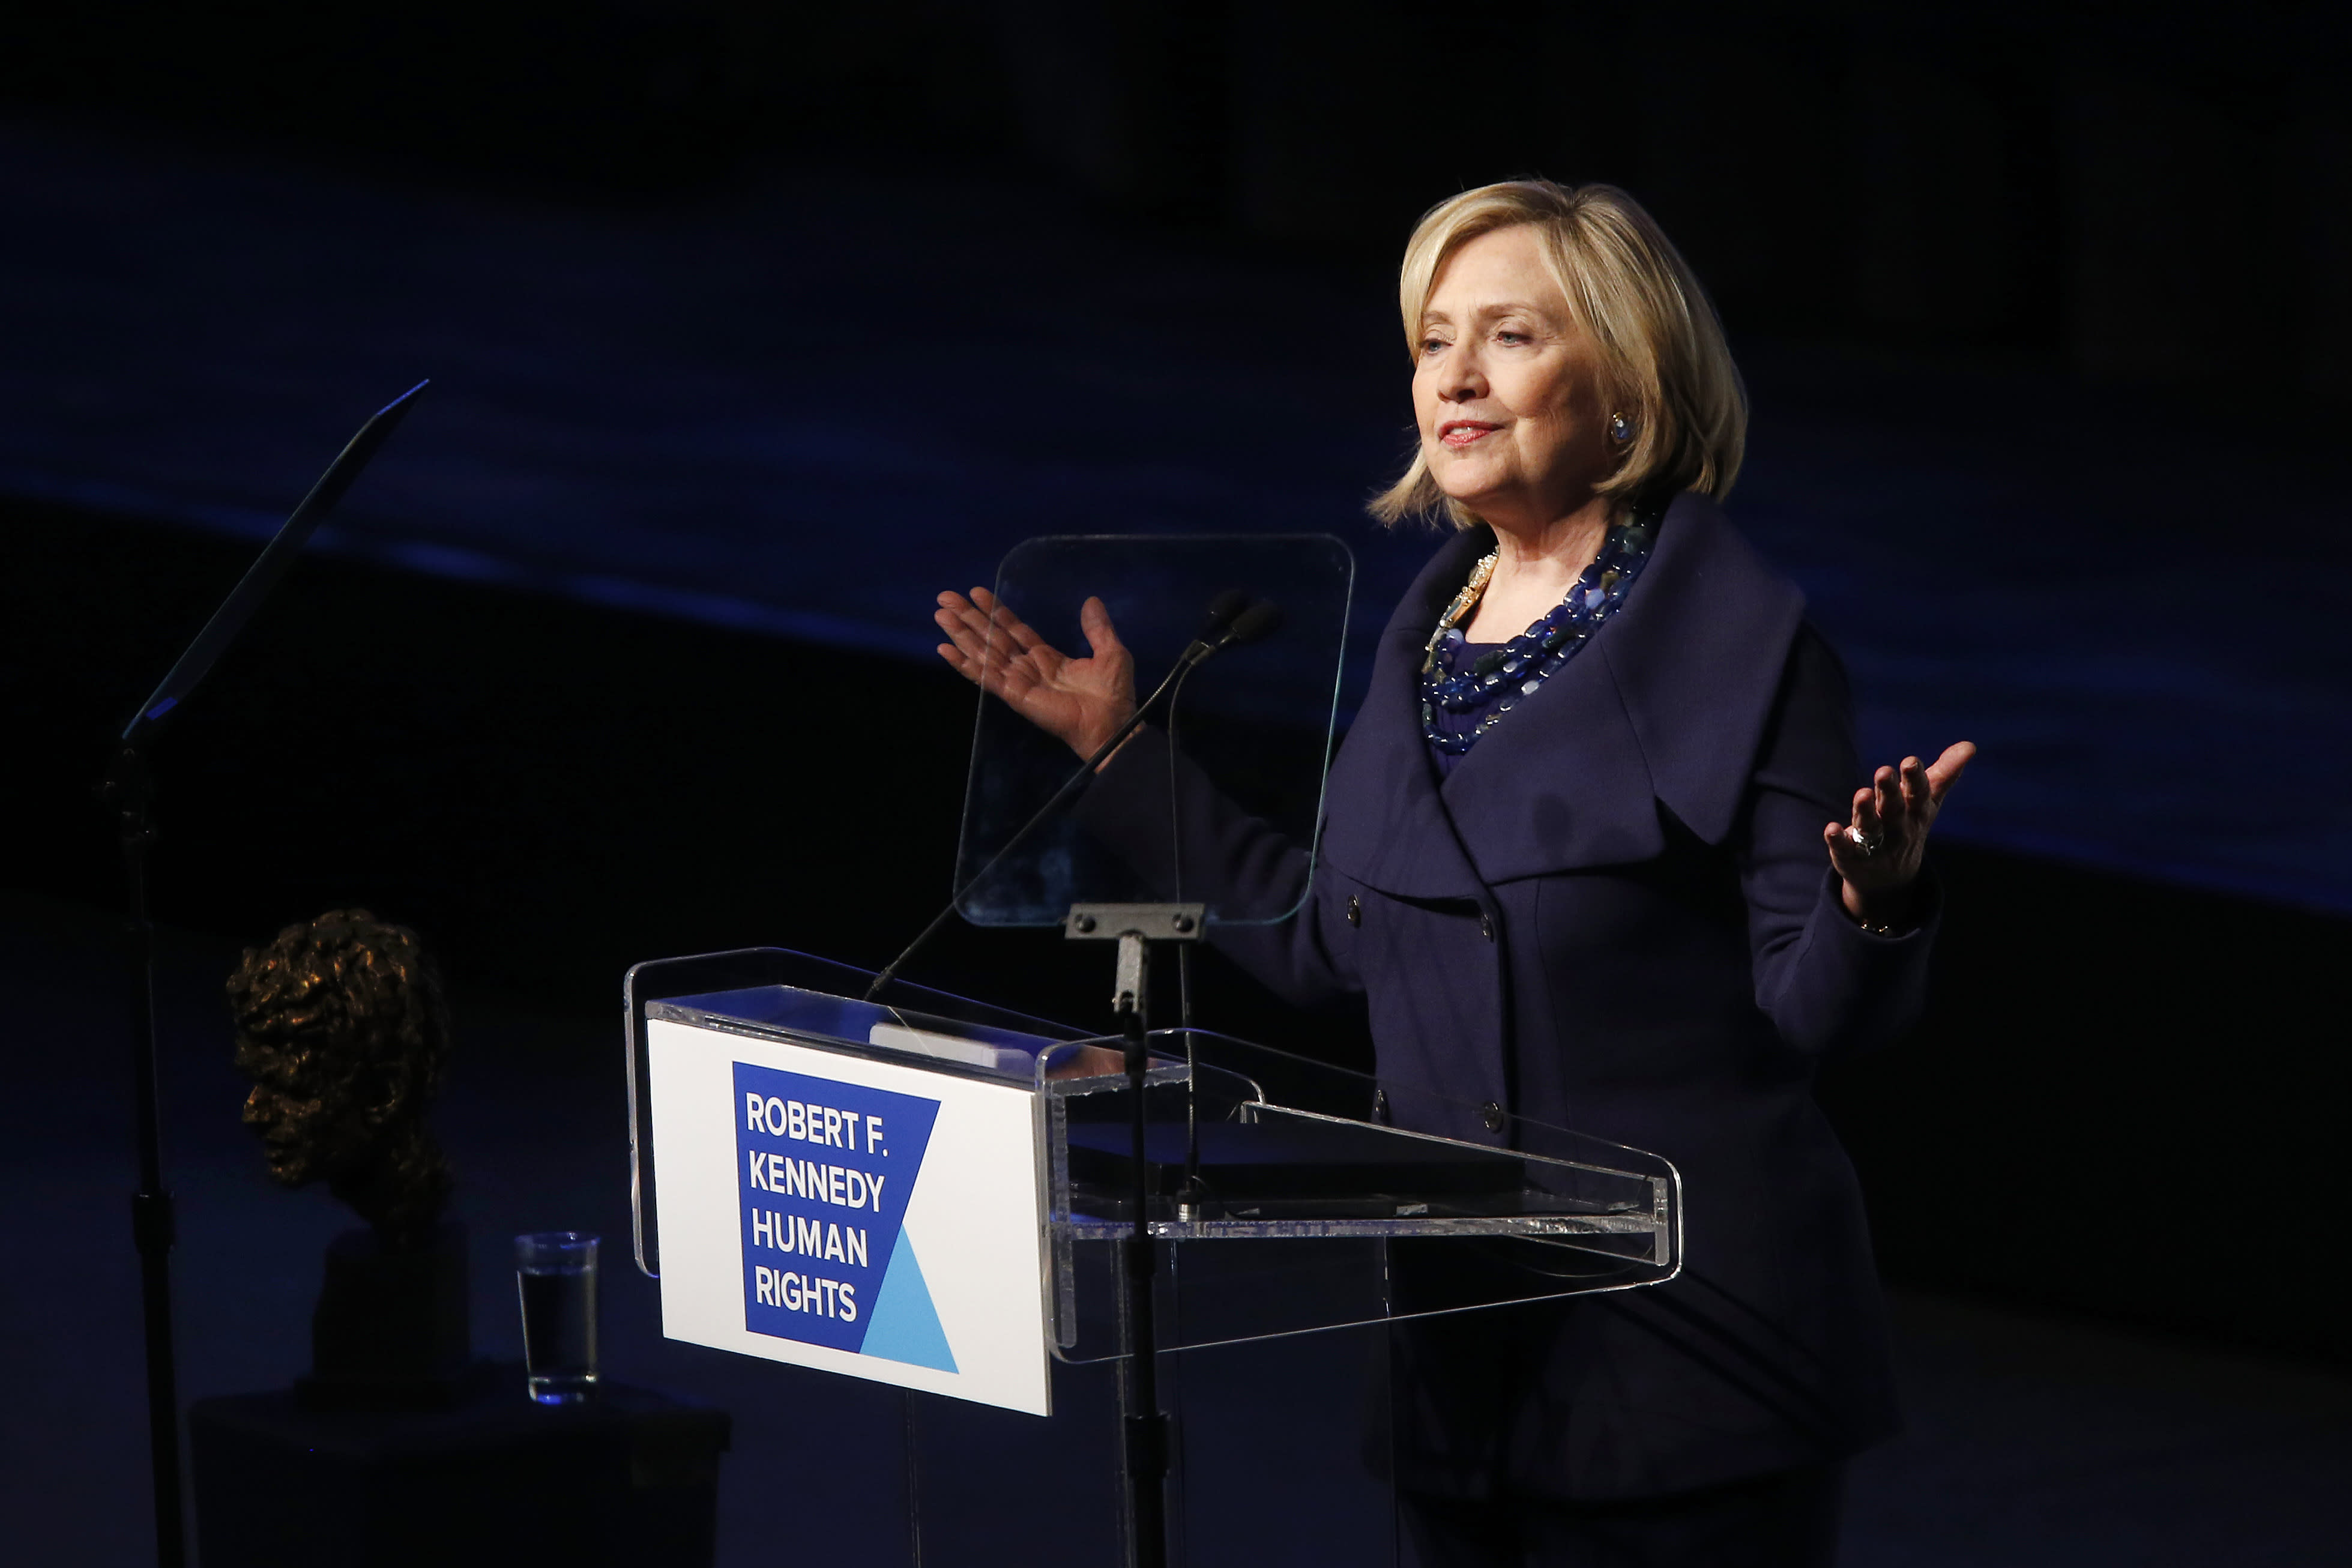 Clinton early 2016 front-runner — but 'barely': NBC News/WSJ poll